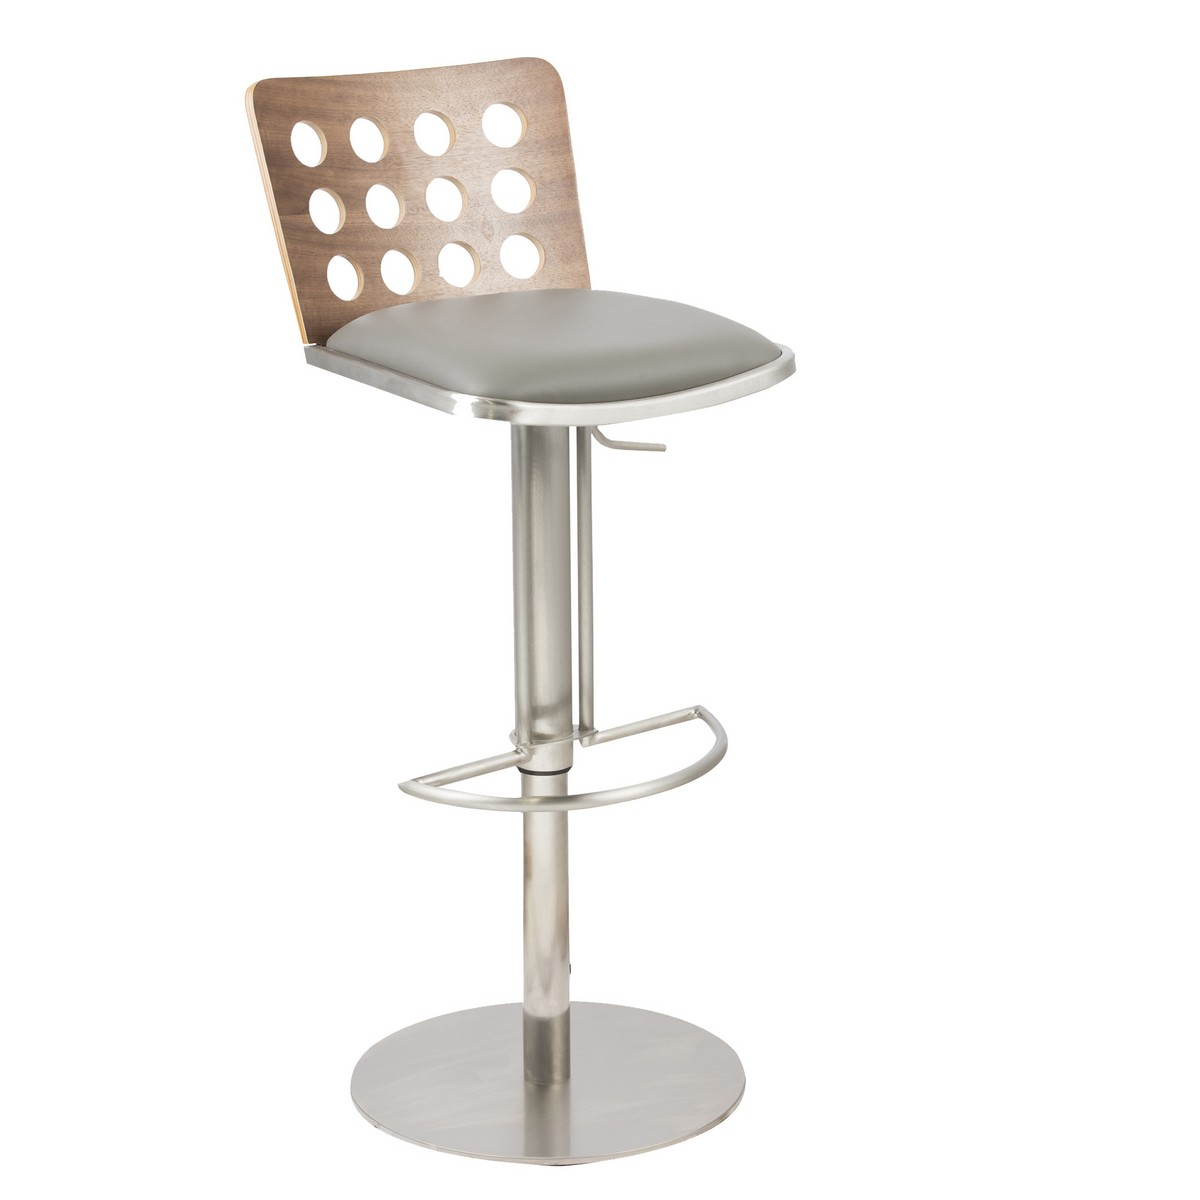 Armen Living Elton Modern Barstool In Gray and Stainless Steel